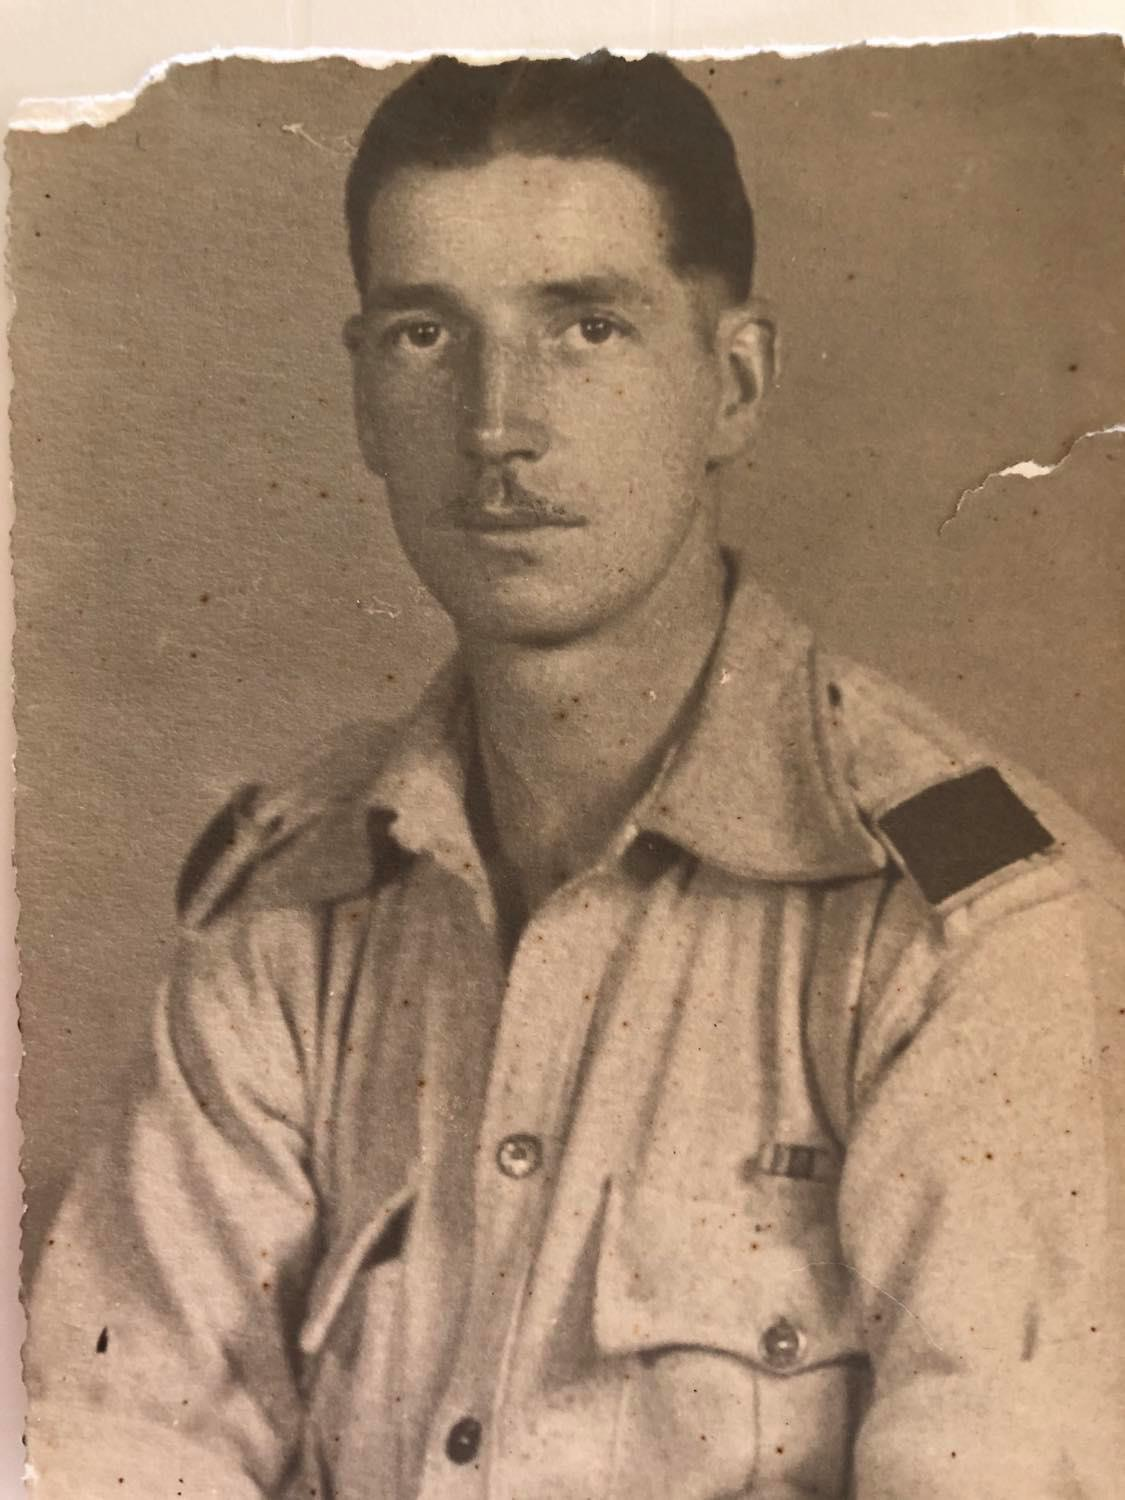 This is my Grandad T H Knowles who was in the 1/4th Essex Regiment